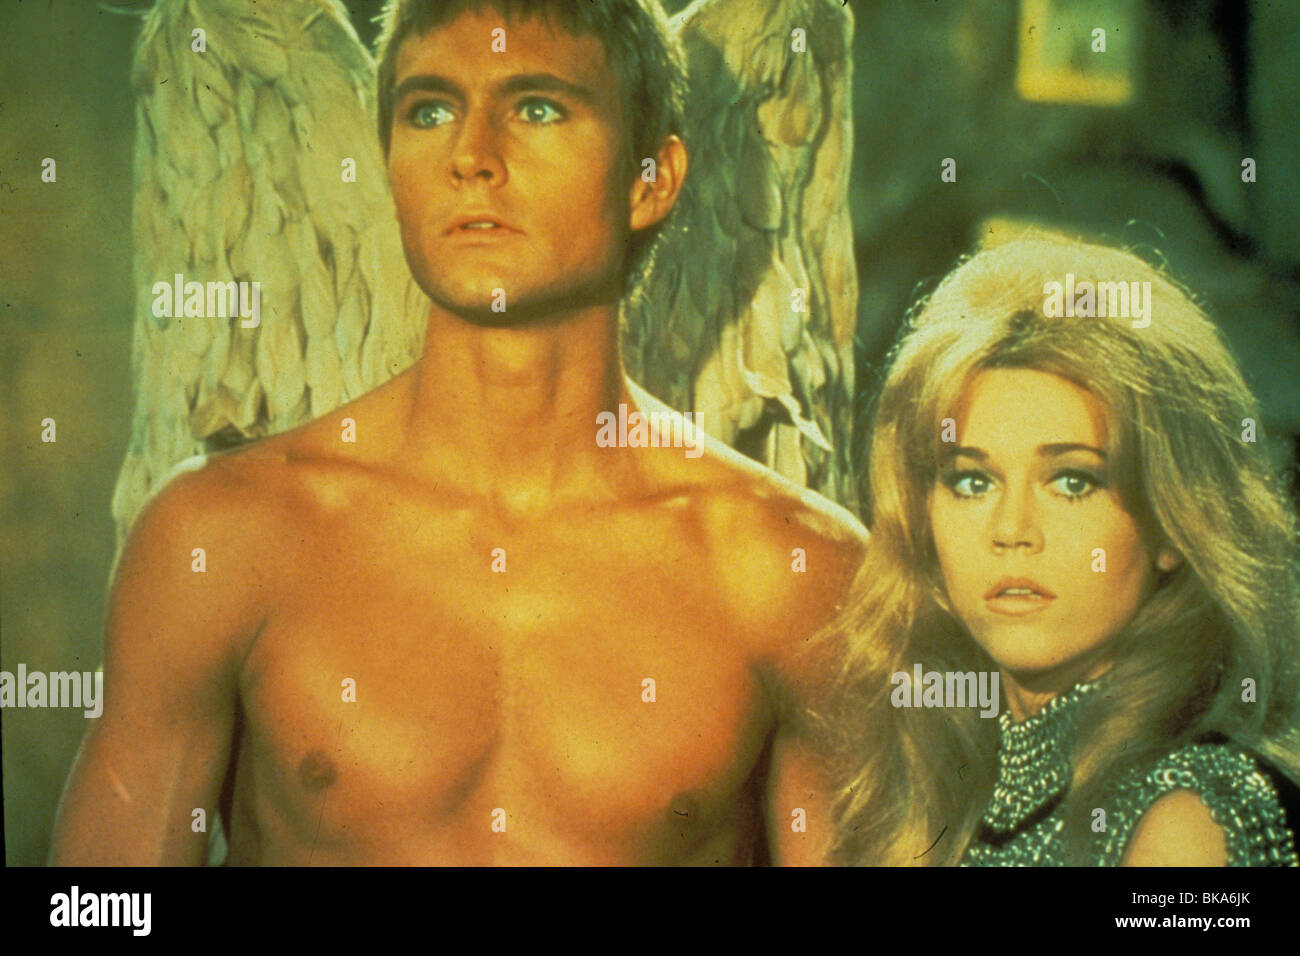 BARBARELLA (1967) JOHN PHILLIP LAW, PYGAR, JANE FONDA, BARBARELLA BRB 026 - Stock Image